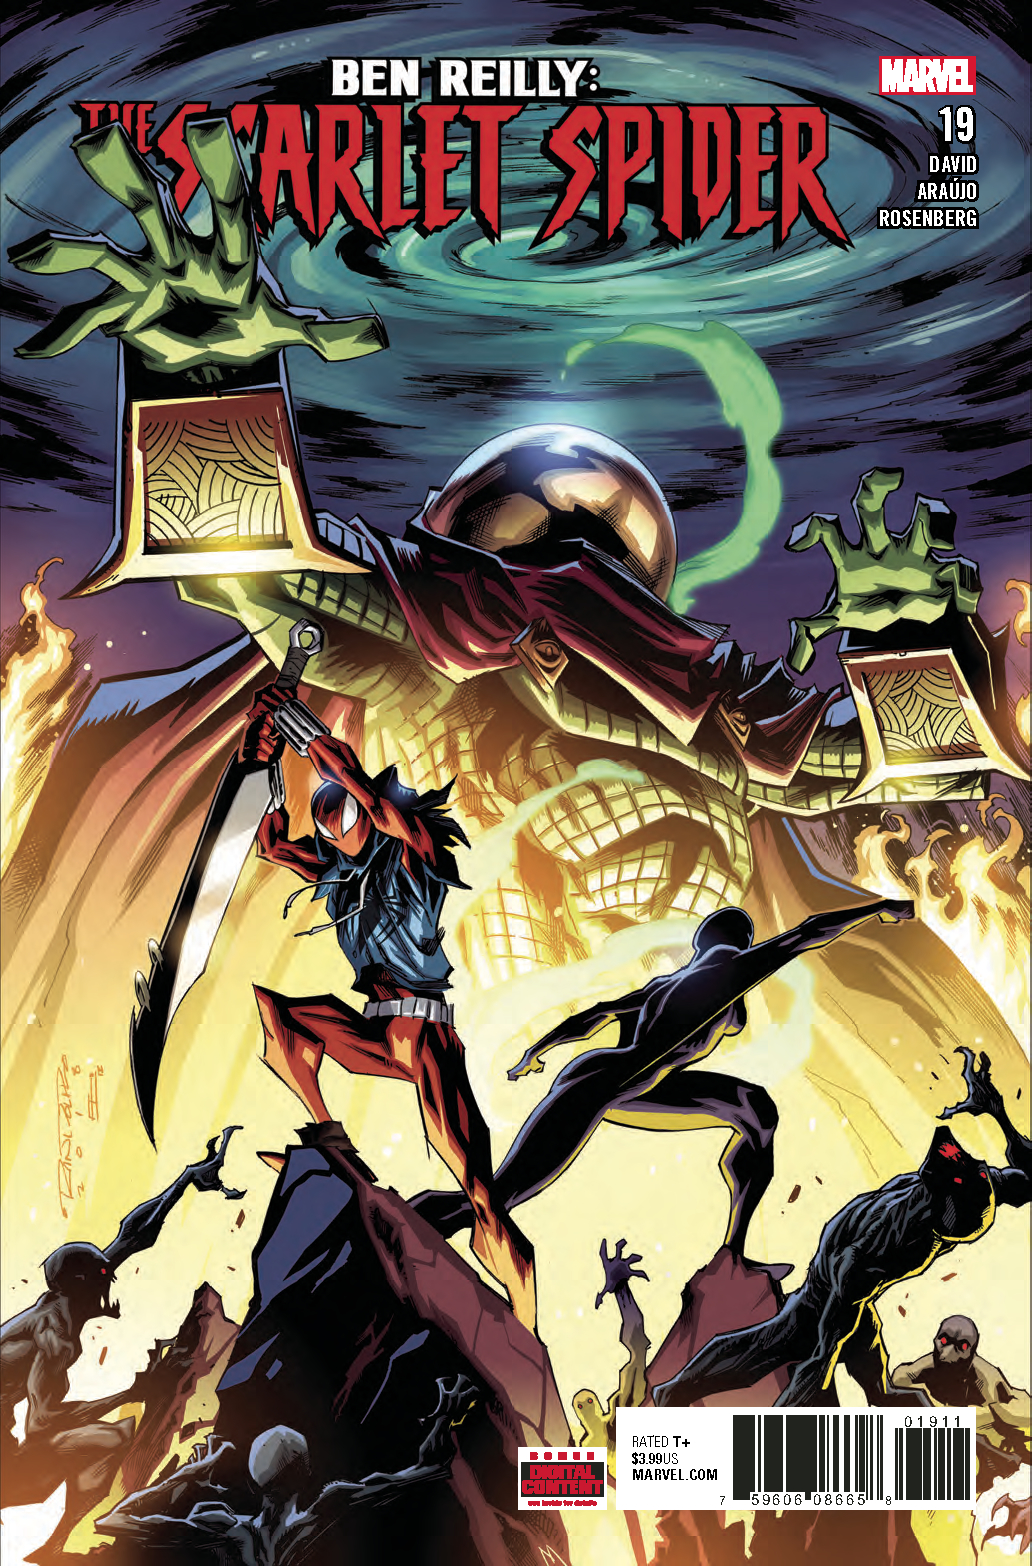 BEN REILLY SCARLET SPIDER #19